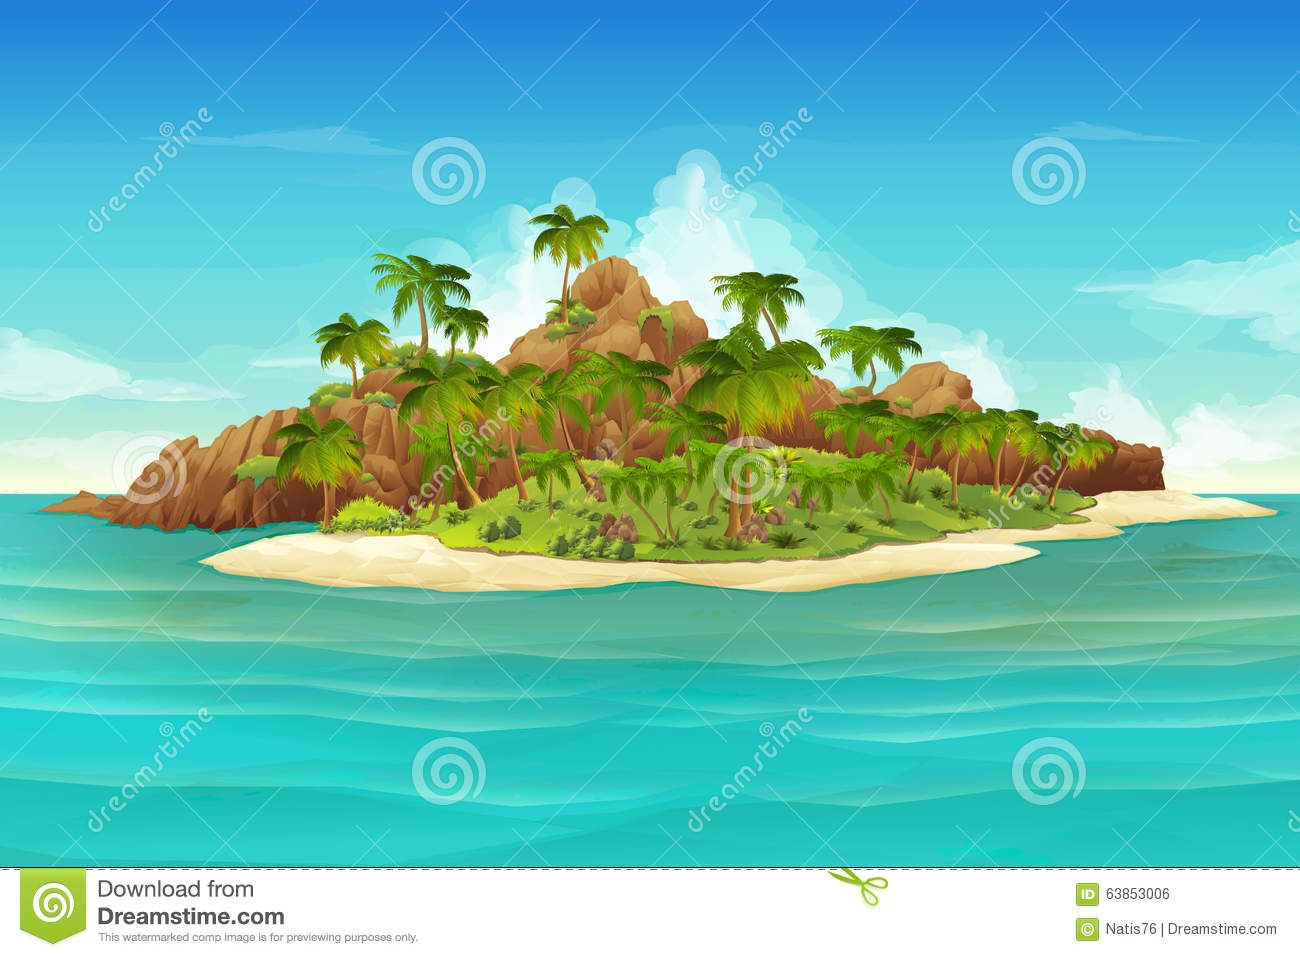 Hd Tropical Island Beach Paradise Wallpapers And Backgrounds: Pin By Kristen Hughes On PP Projections -cartoons